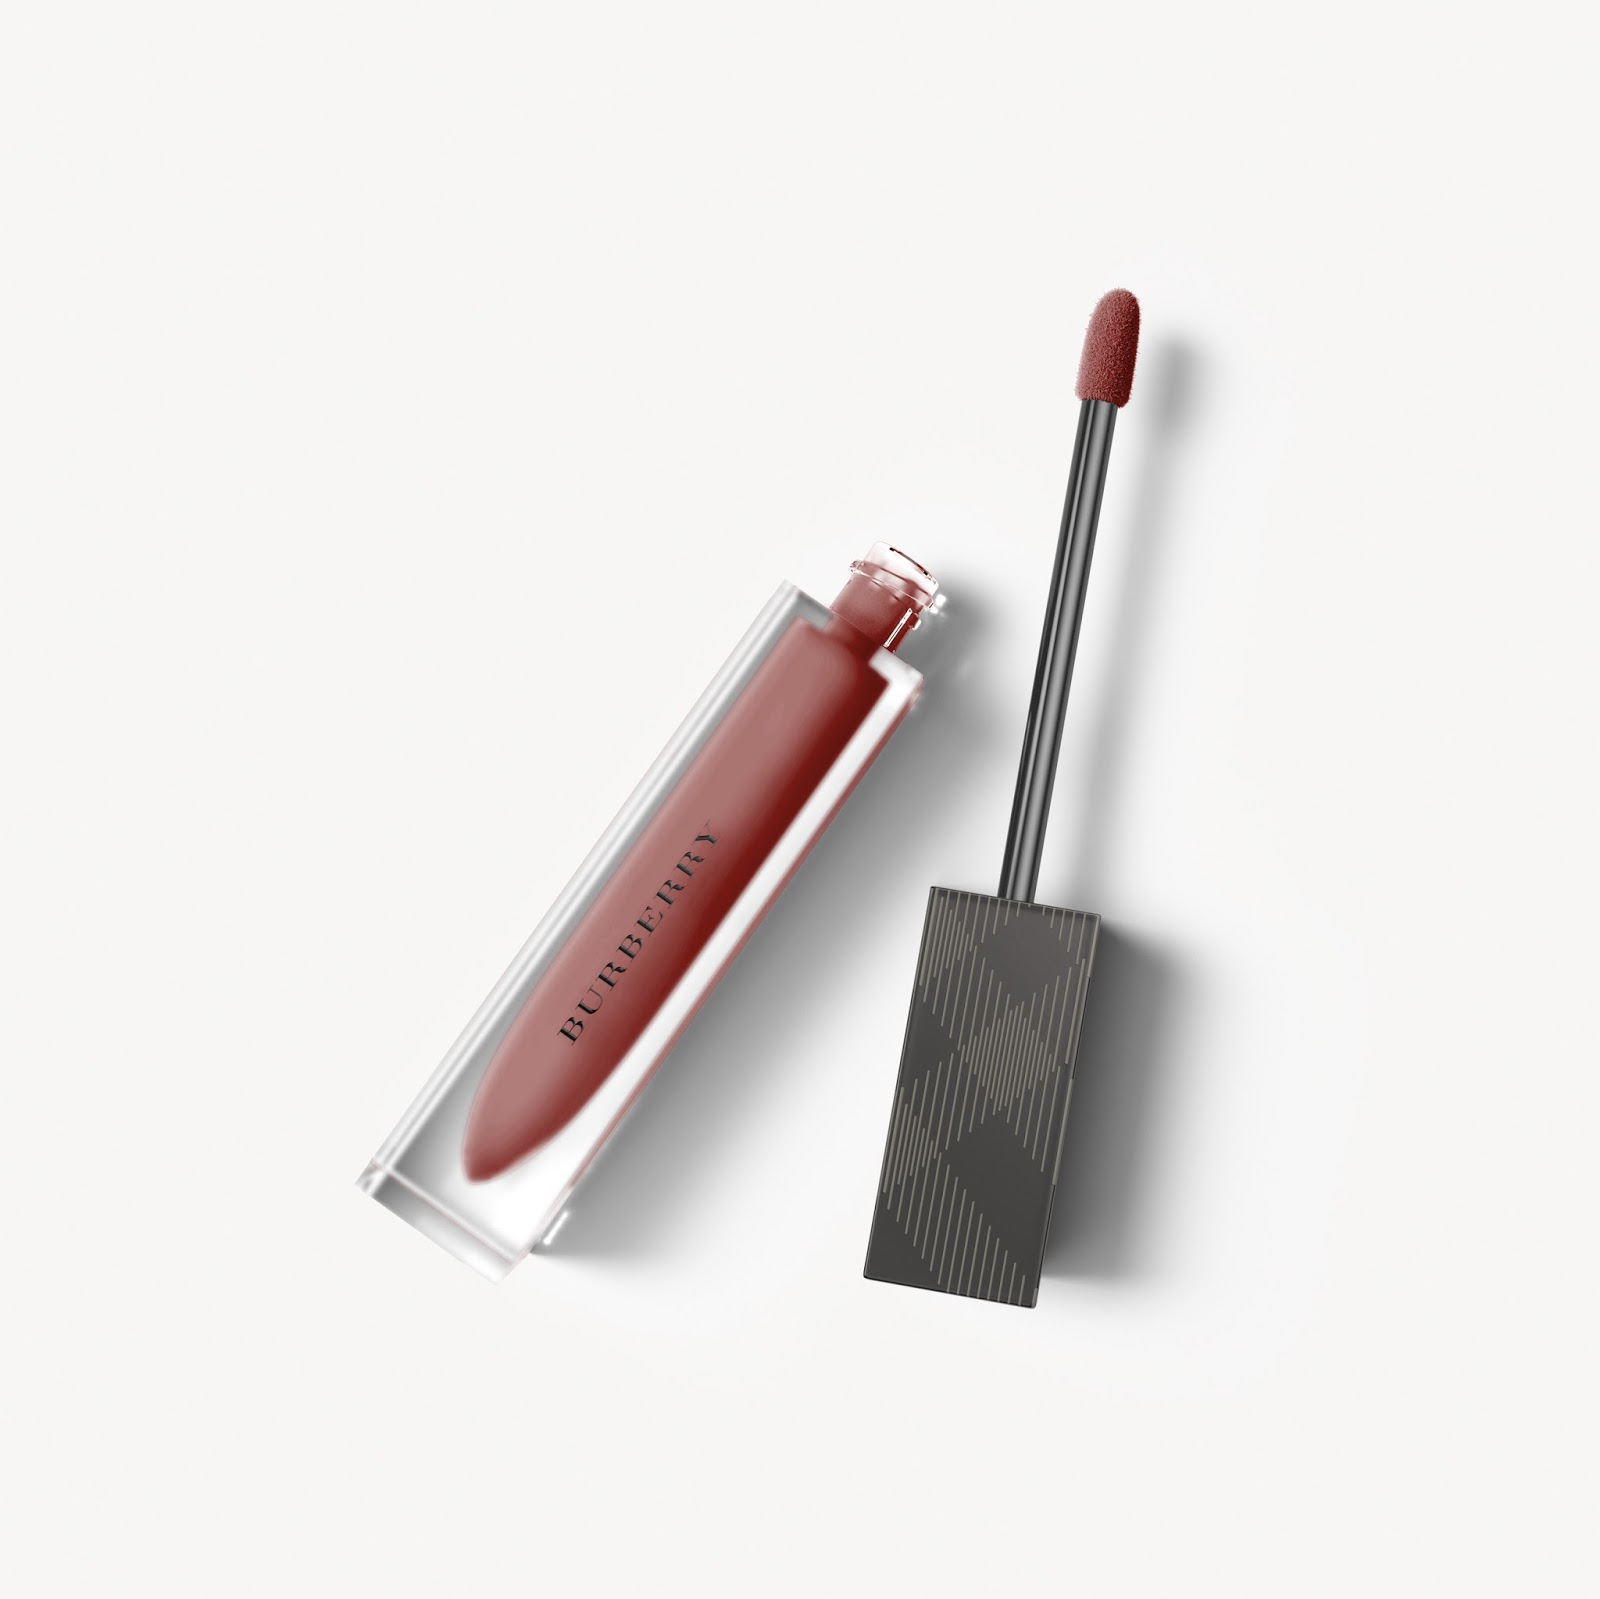 Burberry Liquid Lip Velvet iris law oxblood no 53